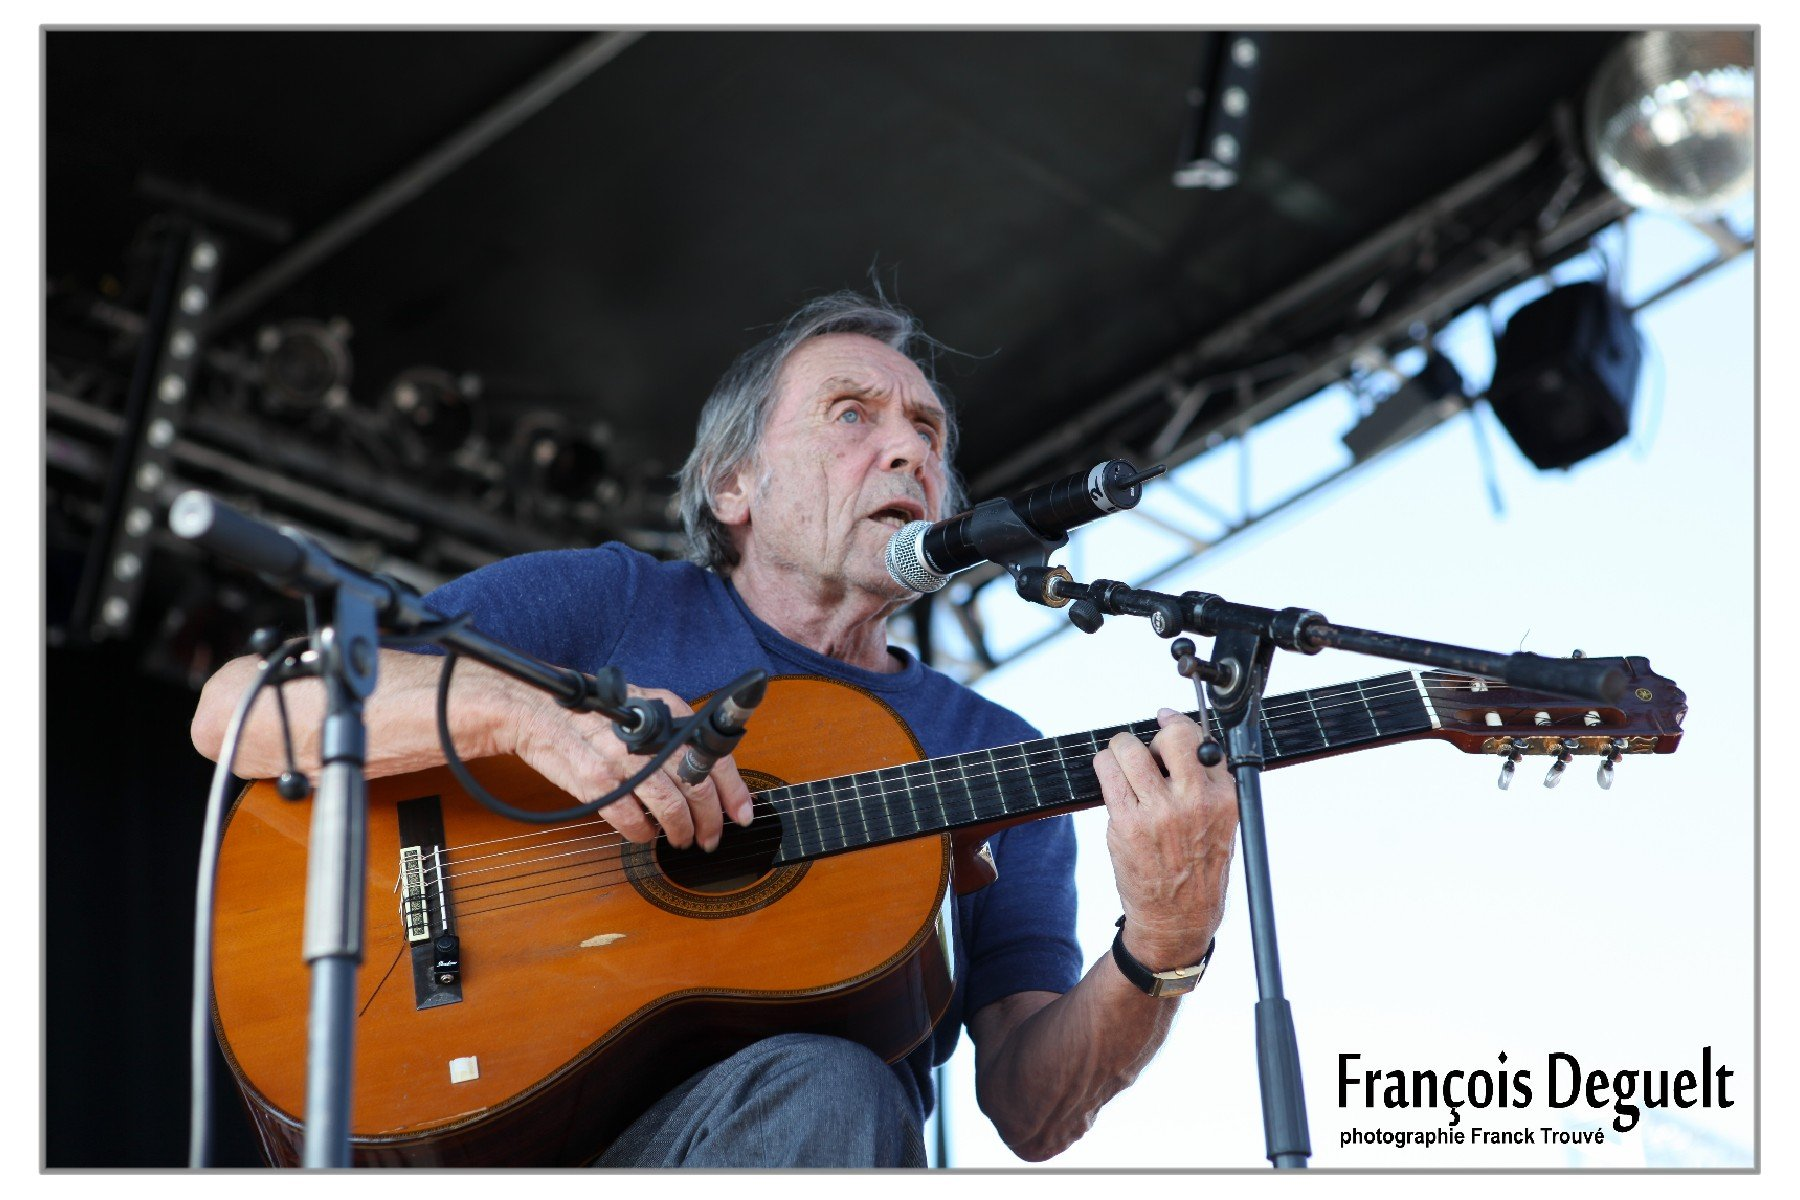 francois deguelt photo franck trouve